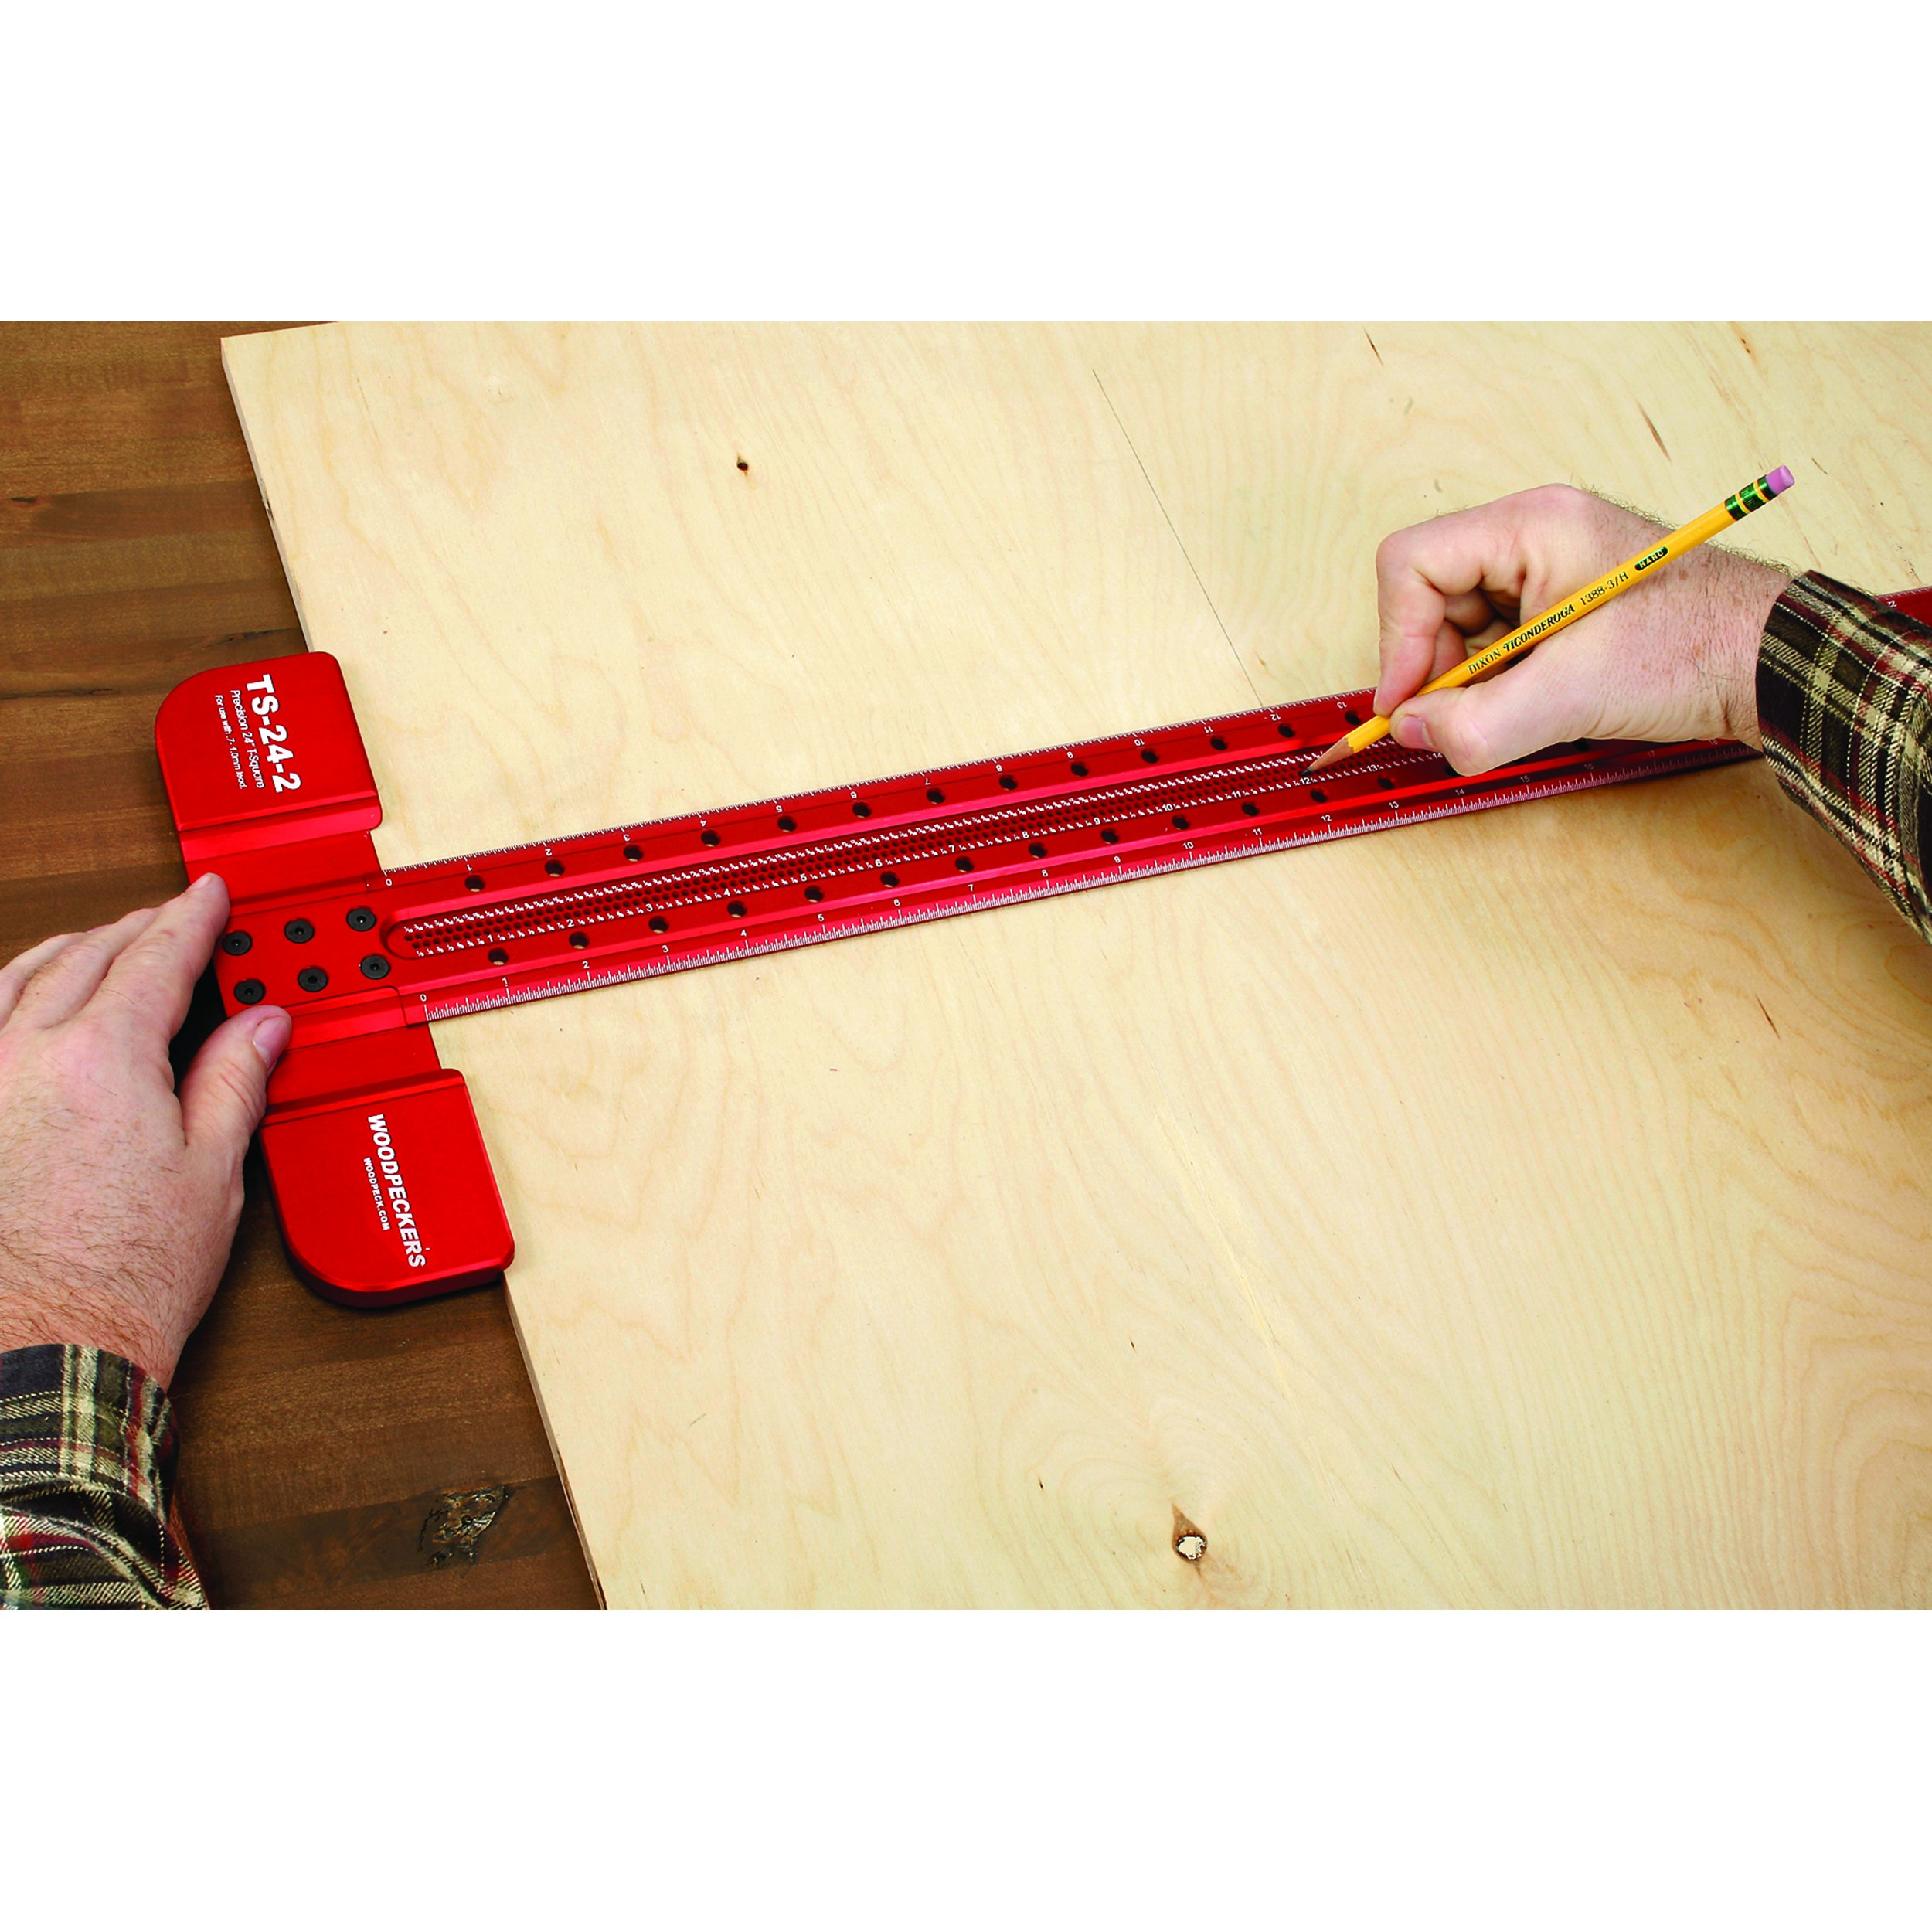 Woodpeckers Precision Woodworking Tools TS-24-2 T-Square, 24-Inch by Woodpeckers Precision Woodworking Tools (Image #3)